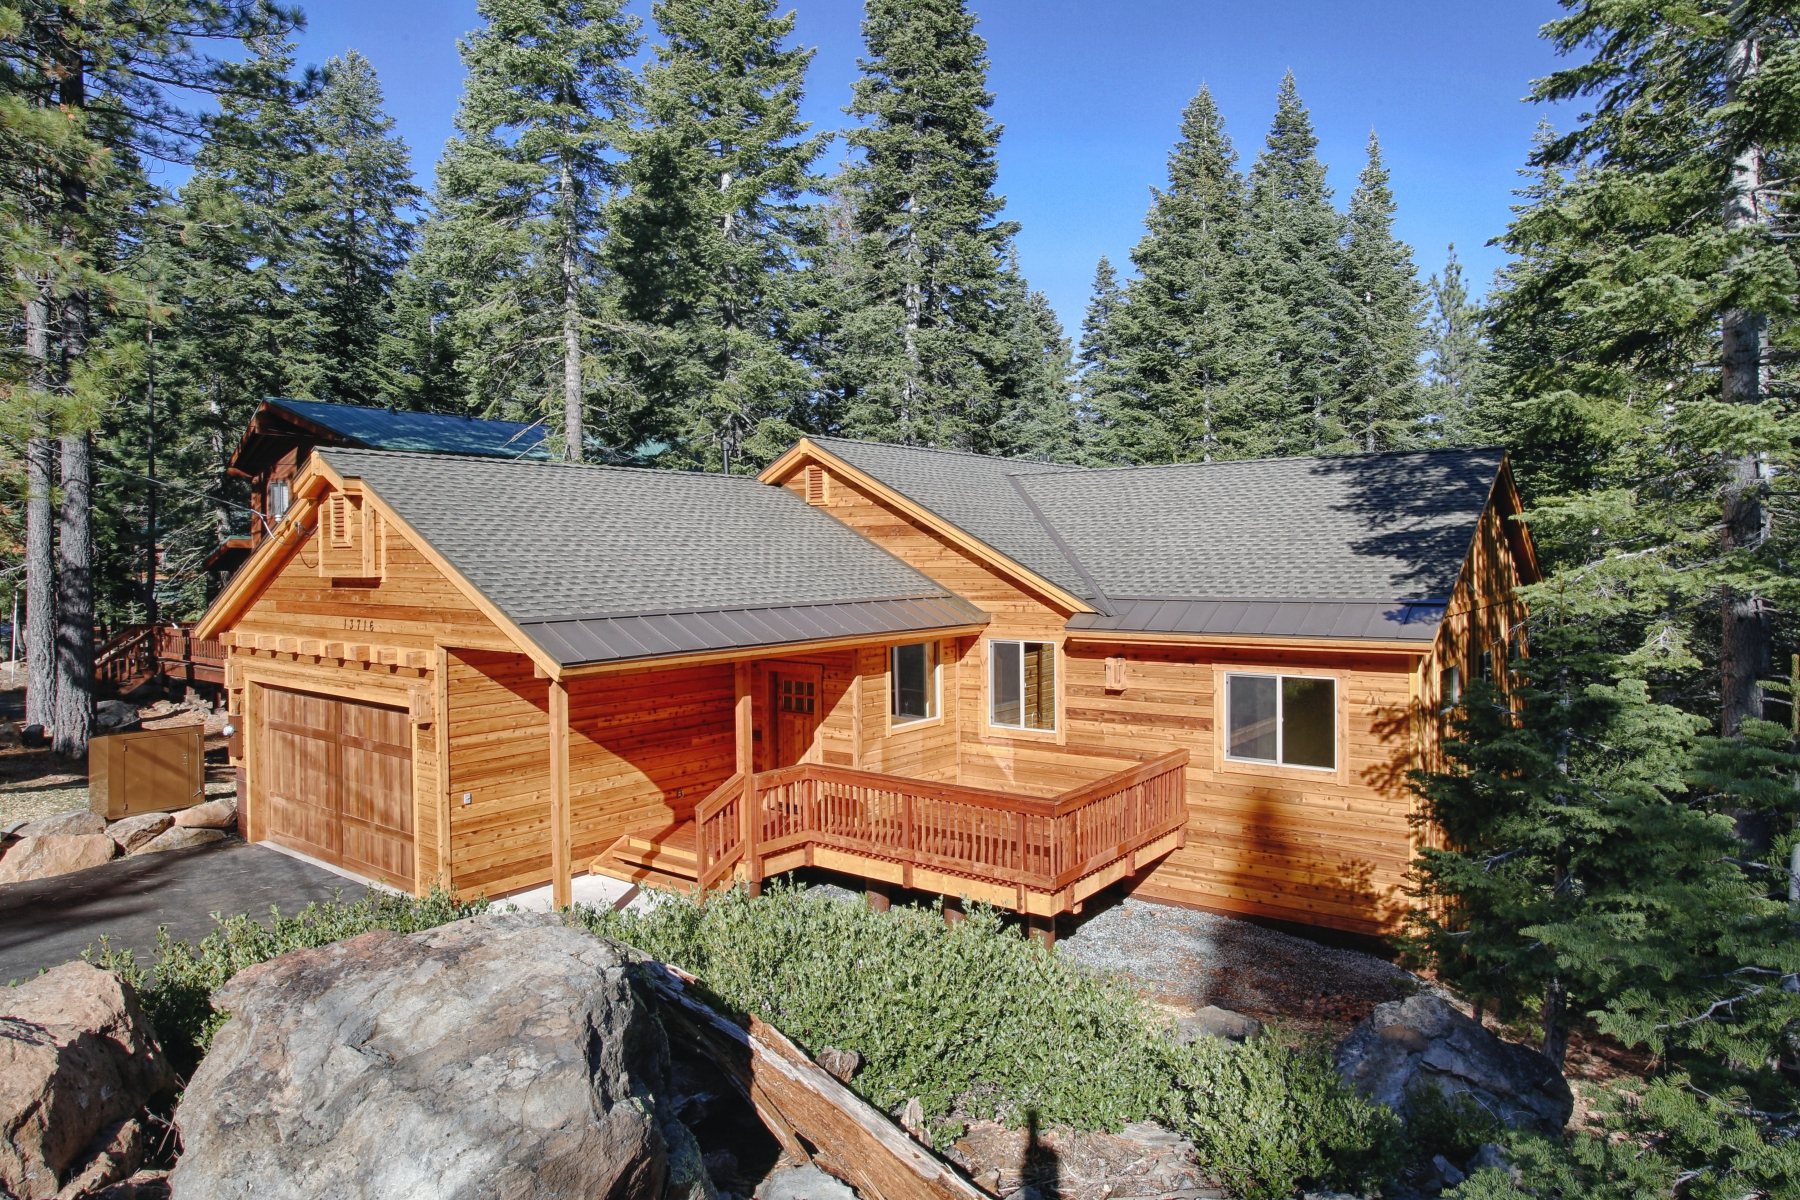 Additional photo for property listing at 13479 Davos Dr. Truckee, CA 96161 13476 Davos Drive Truckee, California 96161 Estados Unidos